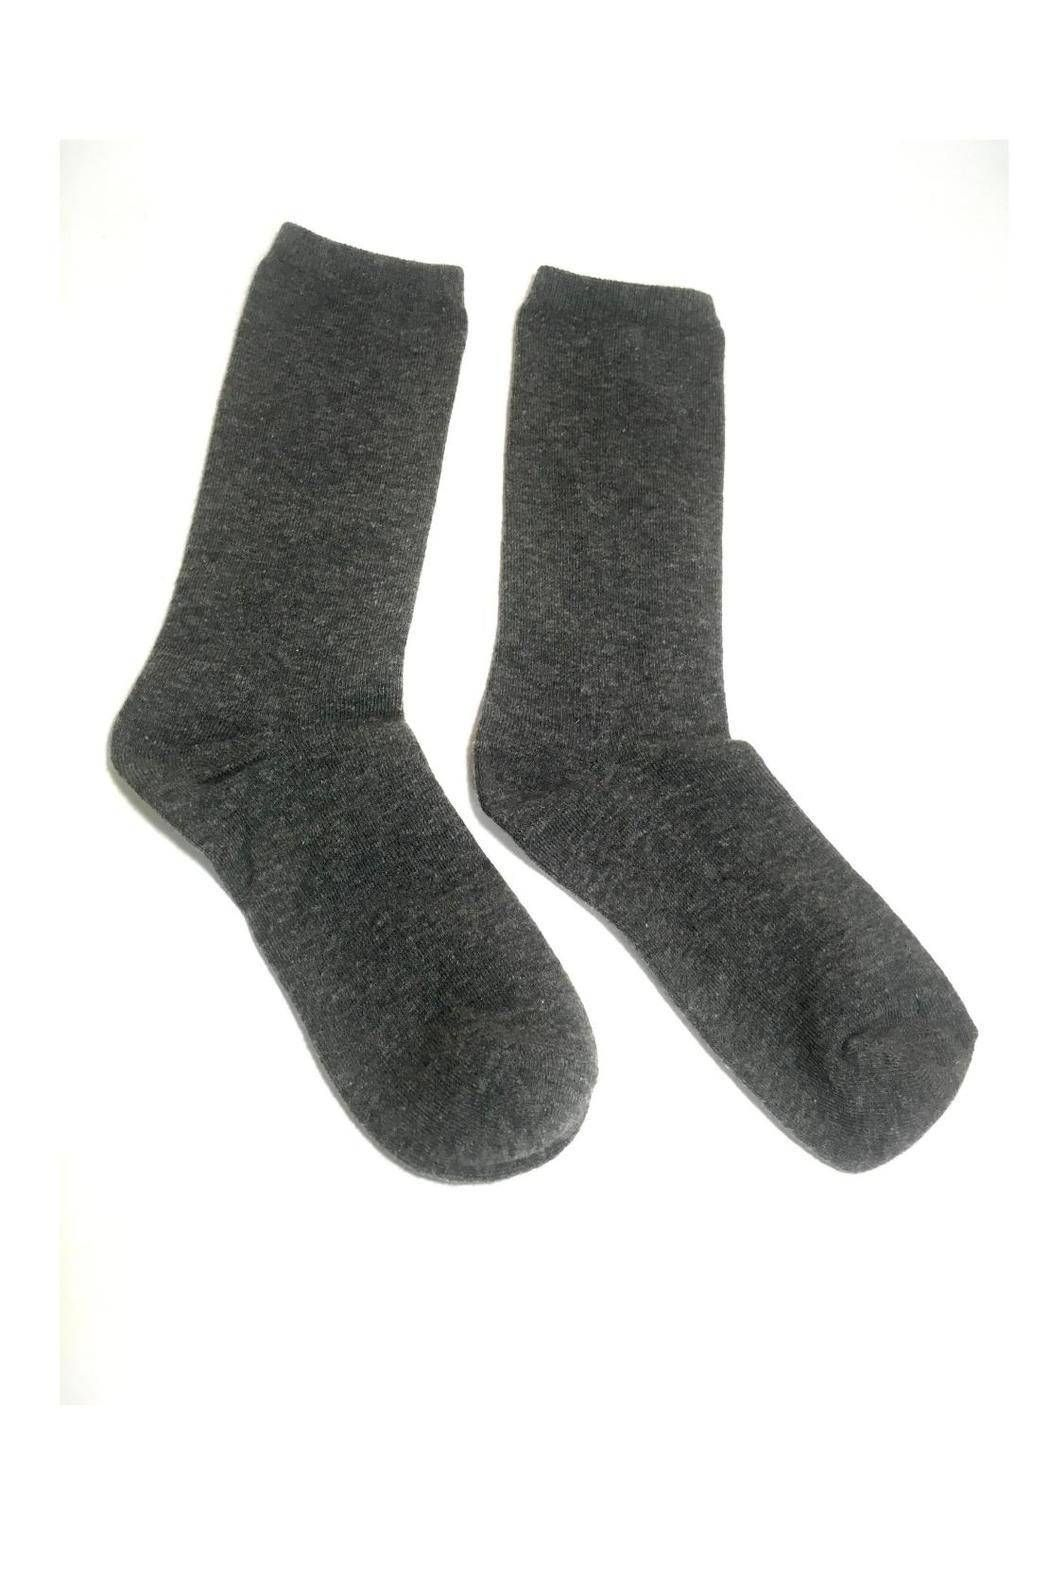 These socks are warm to wear in winter, yet cool enough for summer/ warmer weather. They can also be worn for a business savvy look that requires socks, especially when paired with dorky glasses. Measurement wise, they are 8 inches long from the toe to heel and rise to 8.5 inches from the heel to the calf. The mouth of the sock is 2.5 inches in diameter. The socks are also thin enough to wear with skinny jeans or boots.   Business Savvy Socks by Love's Hangover Creations. Accessories - Socks…